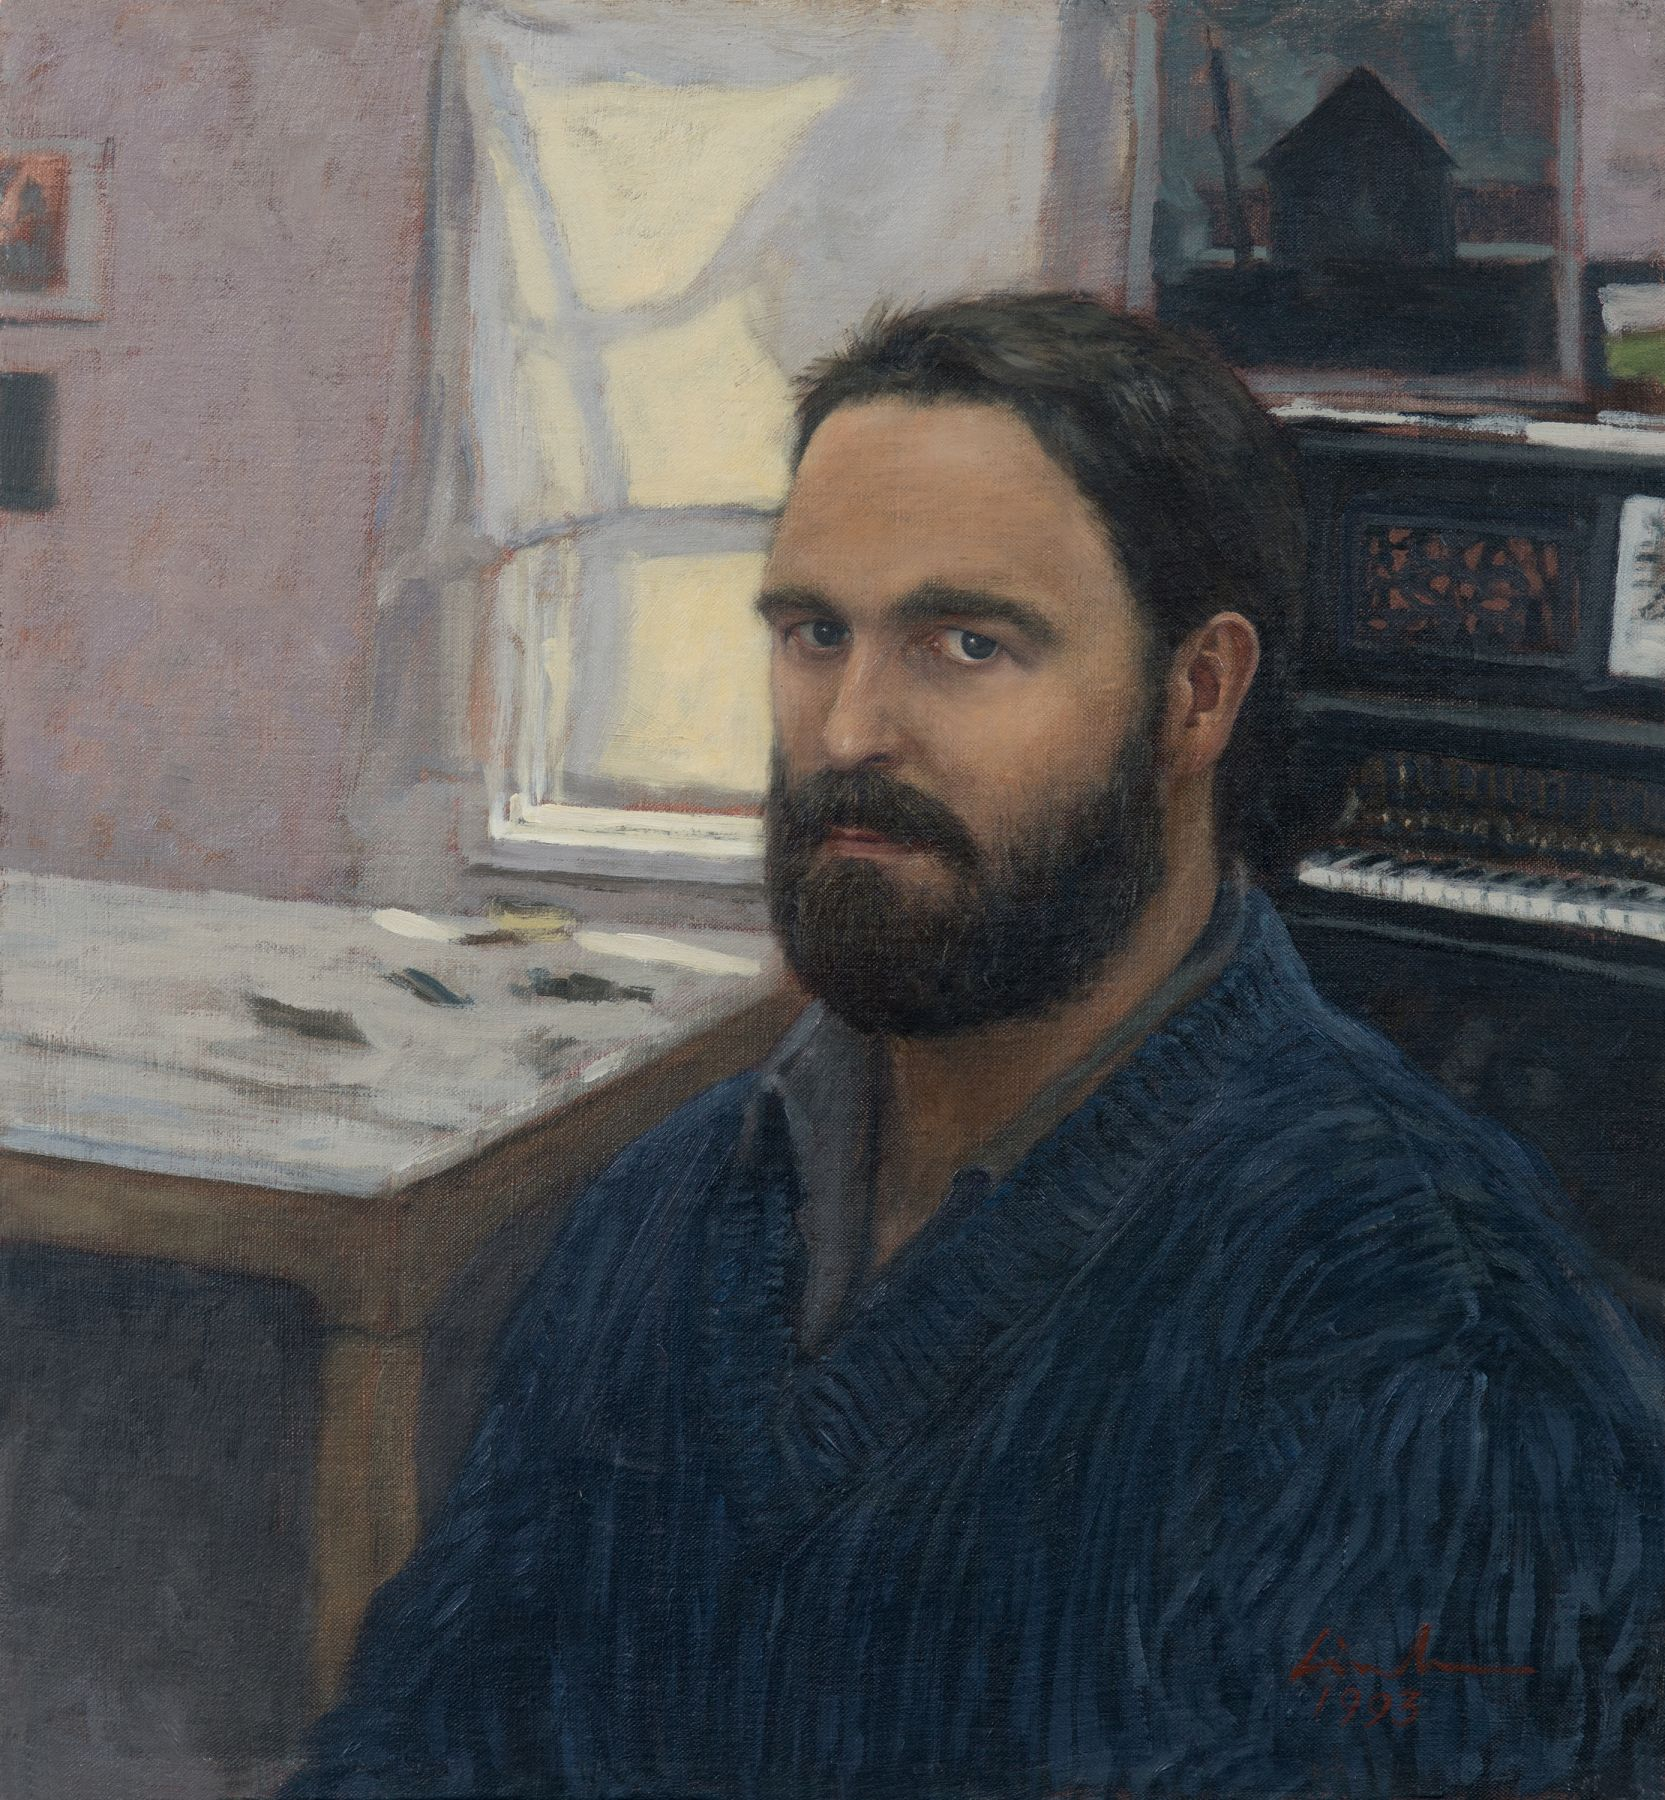 Linden Frederick, Self Portrait with Piano (SOLD), 1993, oil on linen, 13 x 14 inches